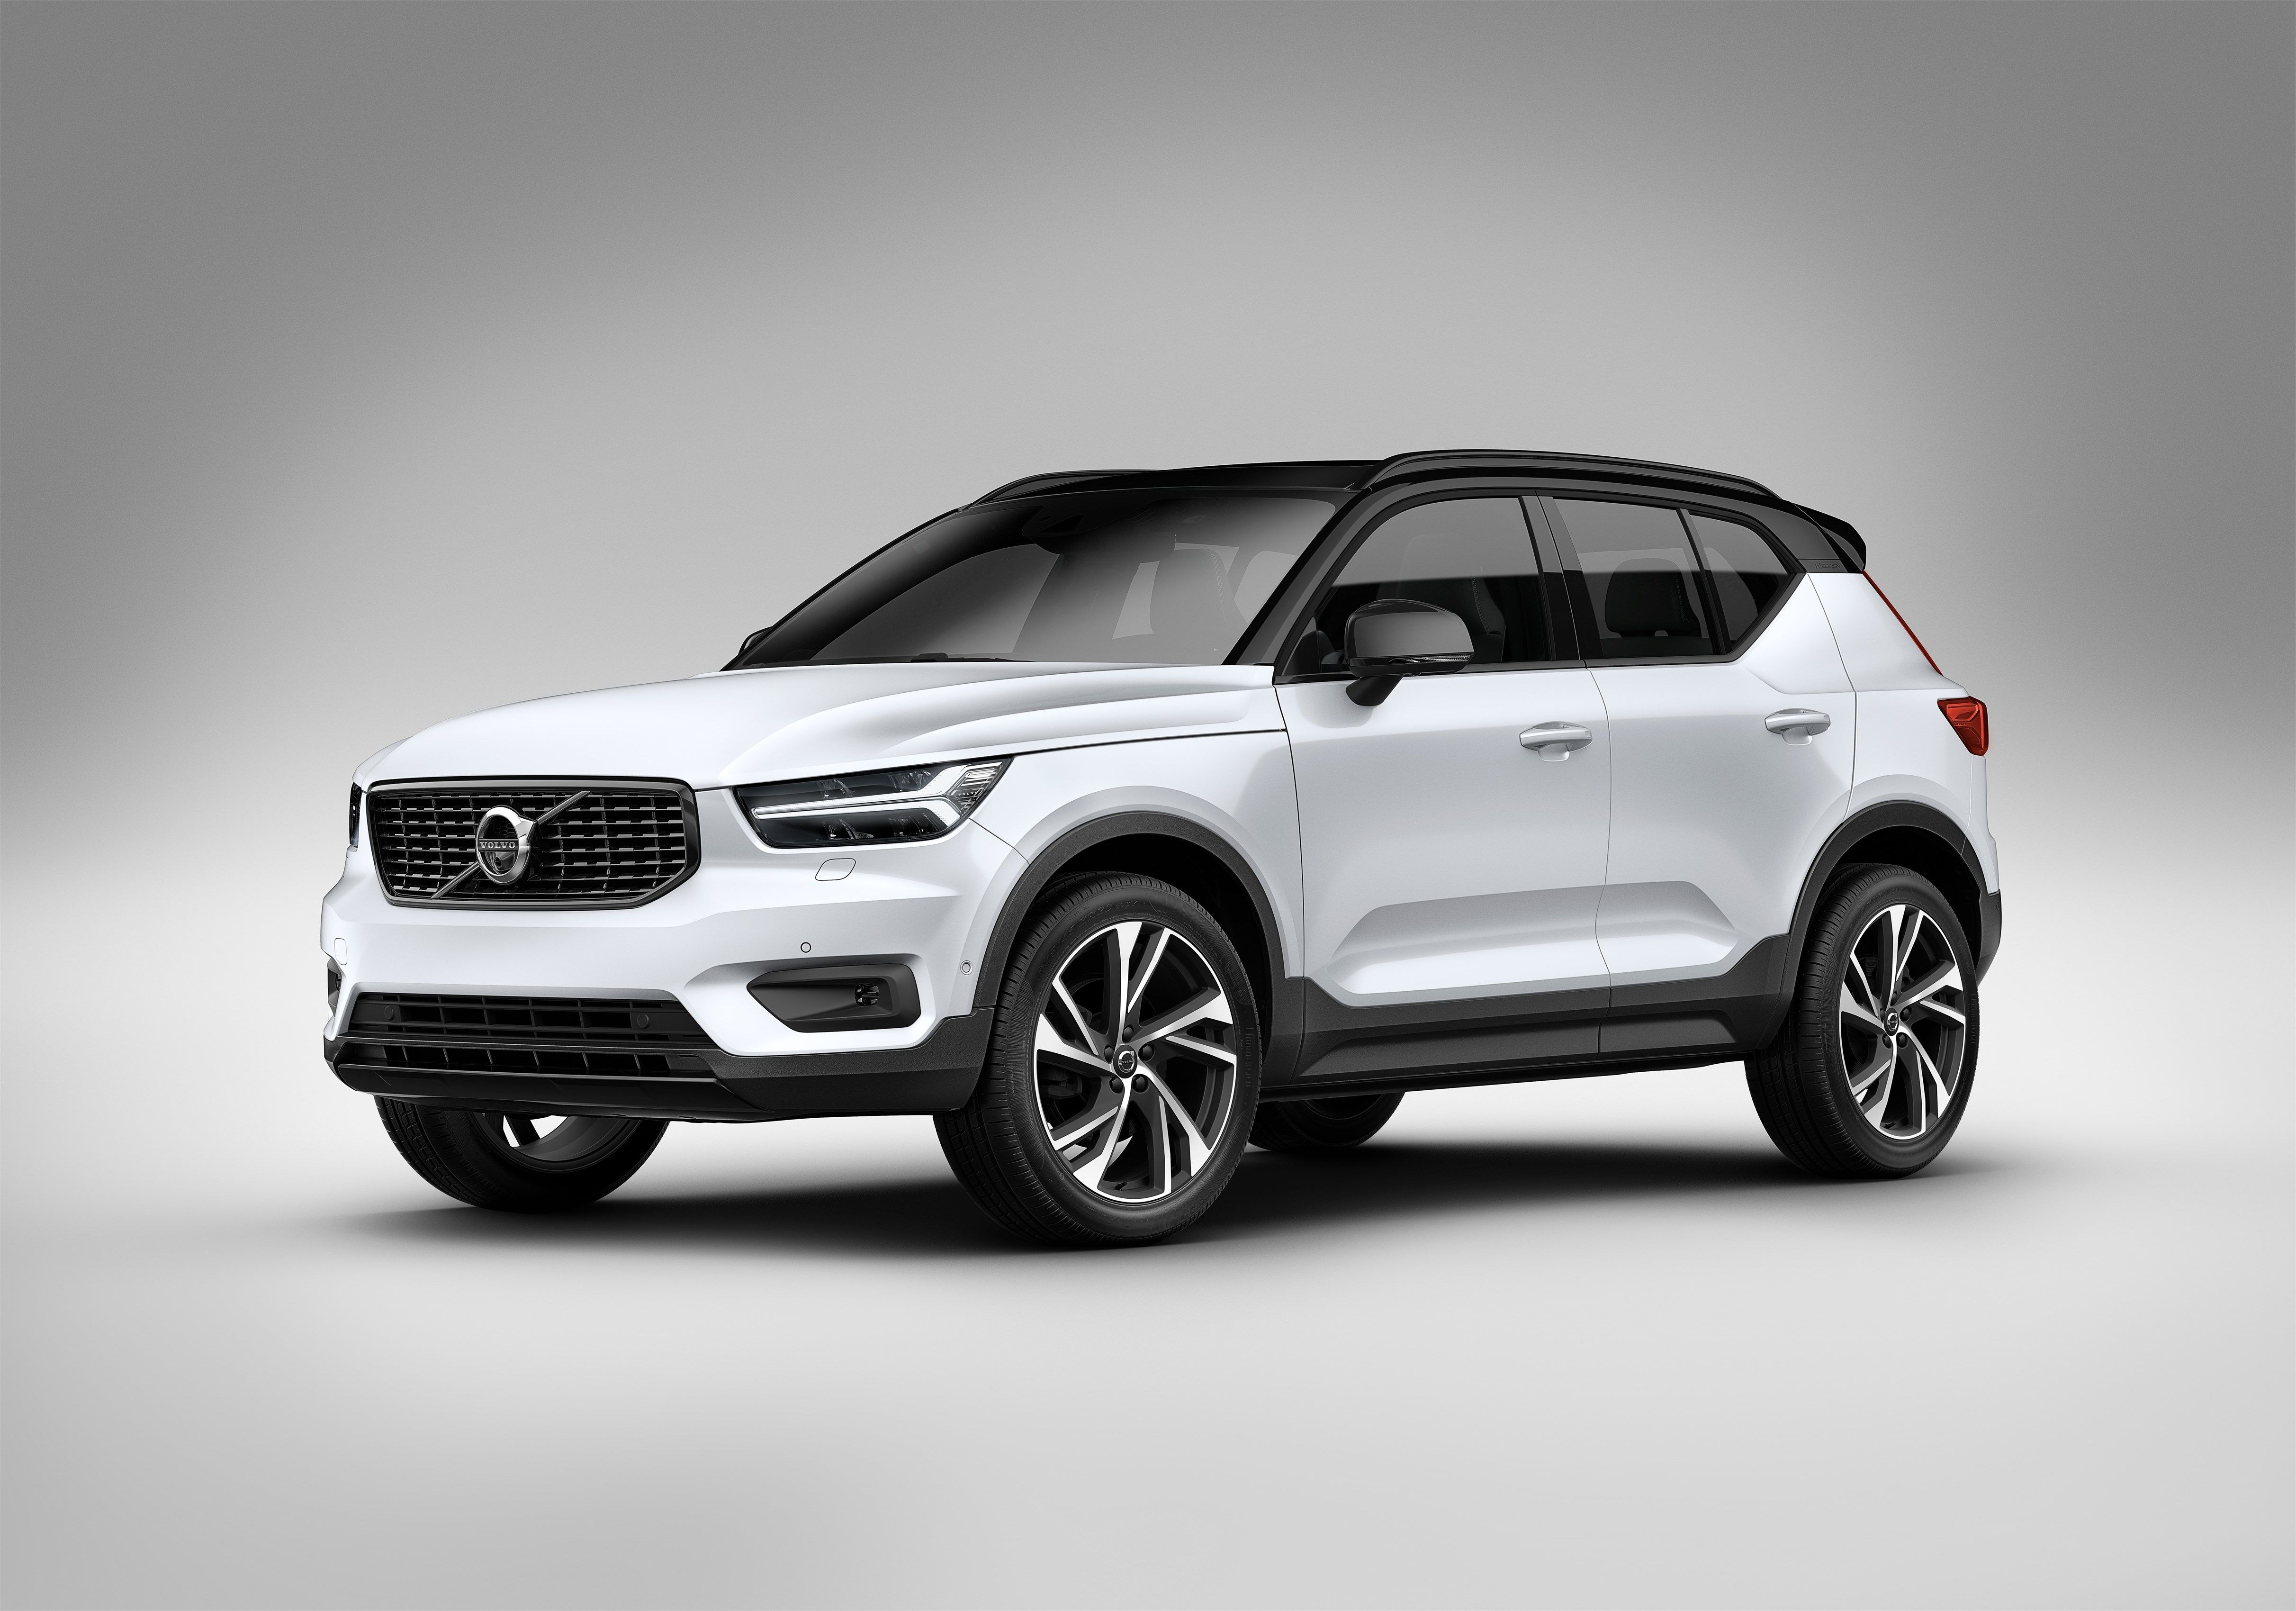 80 Hours Milan: The Launch of Volvo's new small premium SUV